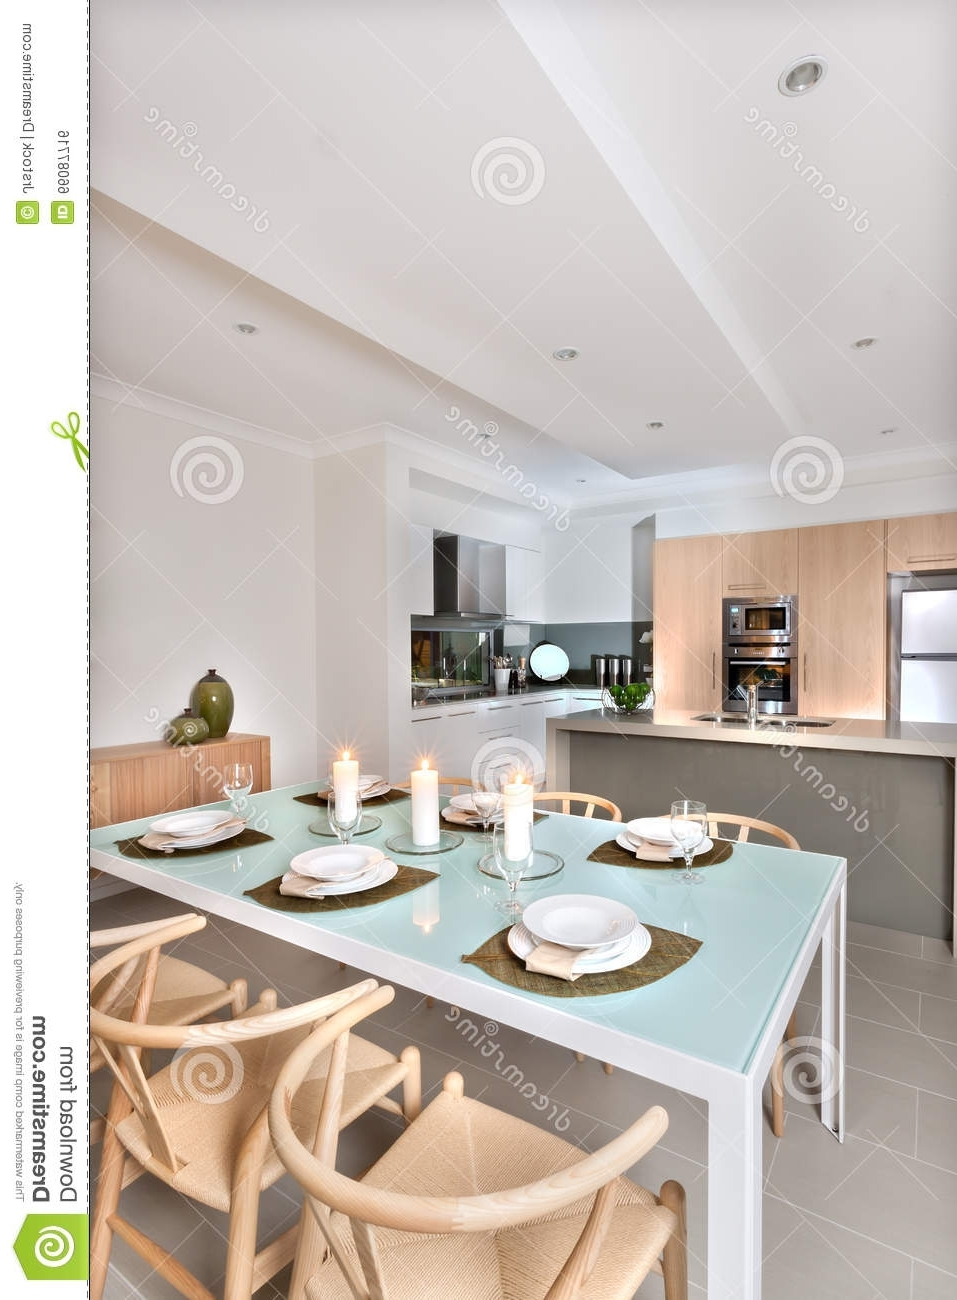 Most Current Modern Dining Room Setup With Candles Flashing In Front Of The Throughout Shiny White Dining Tables (View 5 of 25)